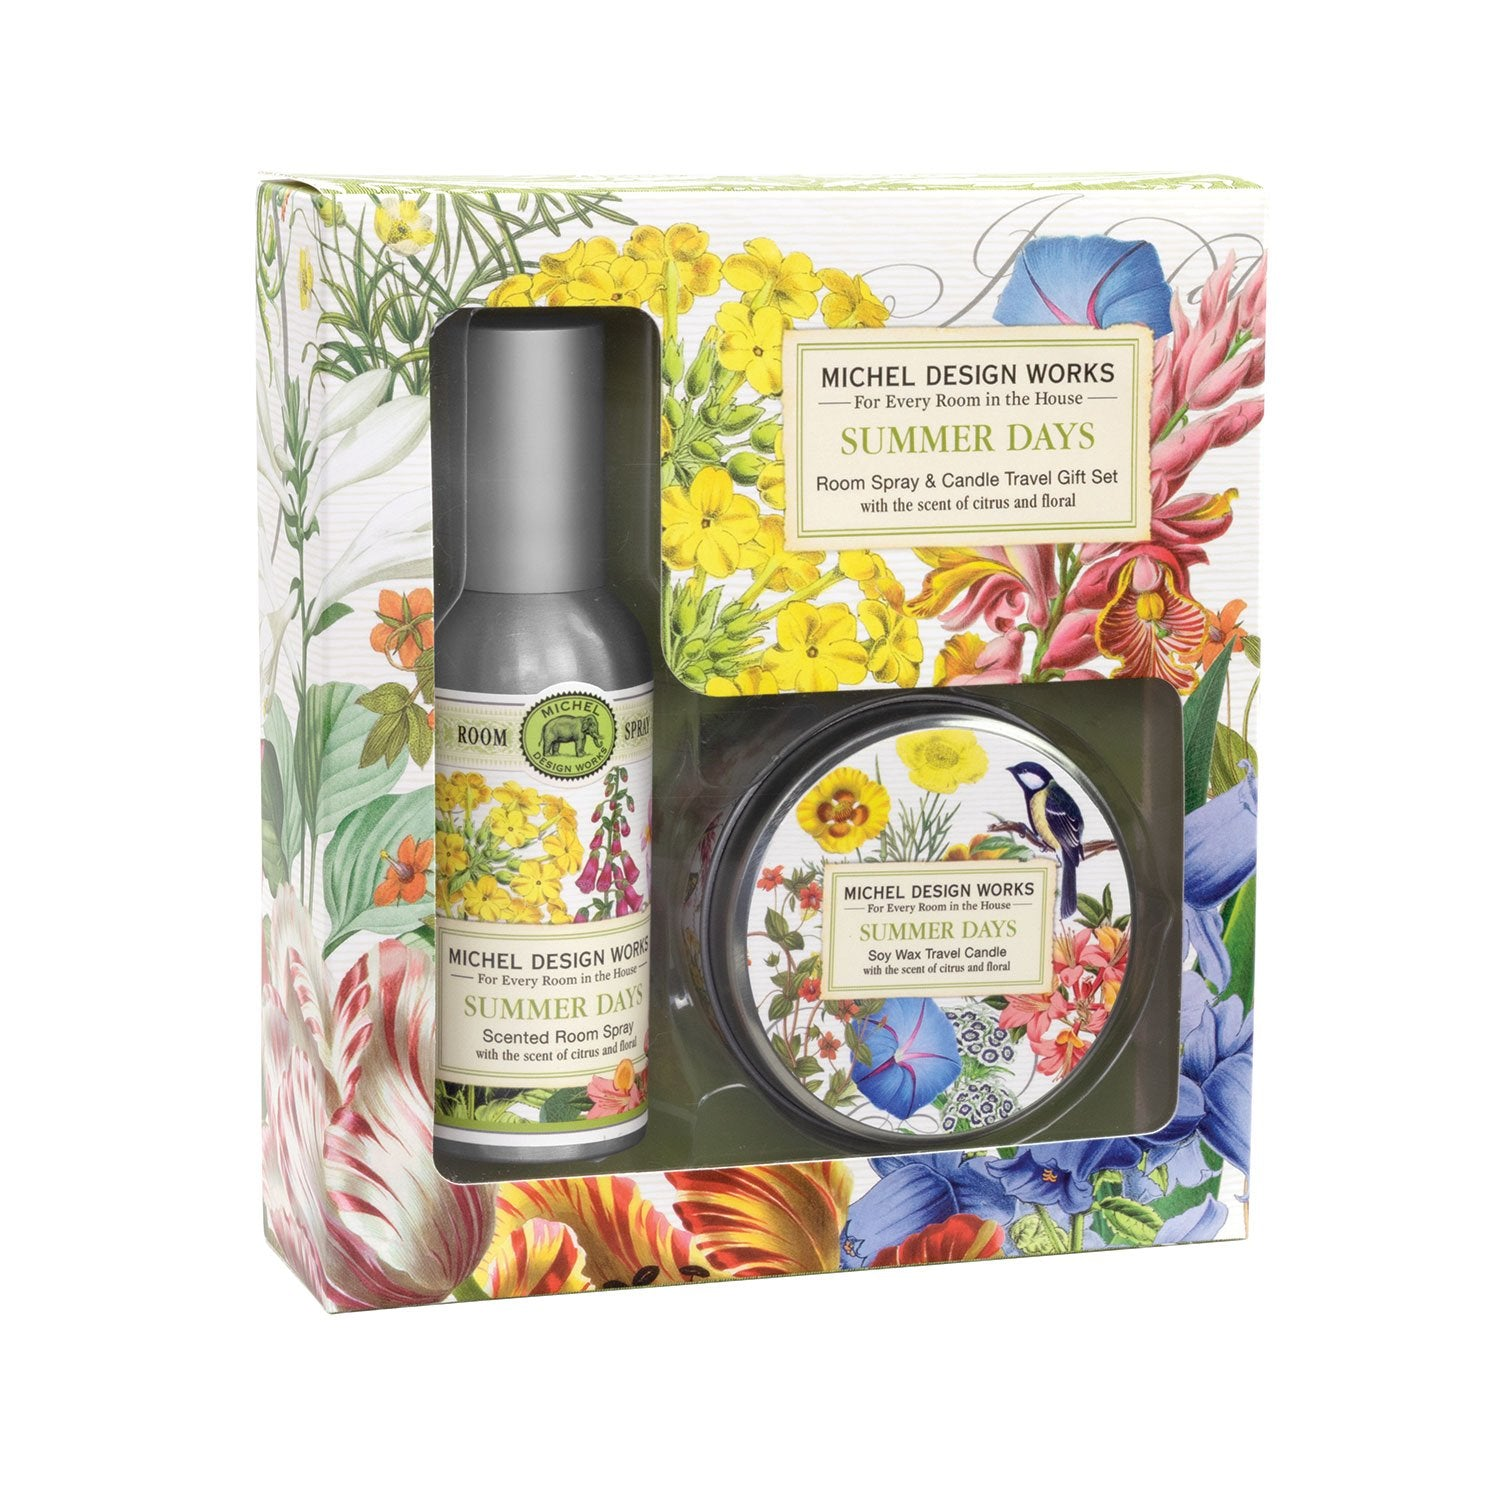 Summer Days Room Spray and Candle Travel Gift Sets